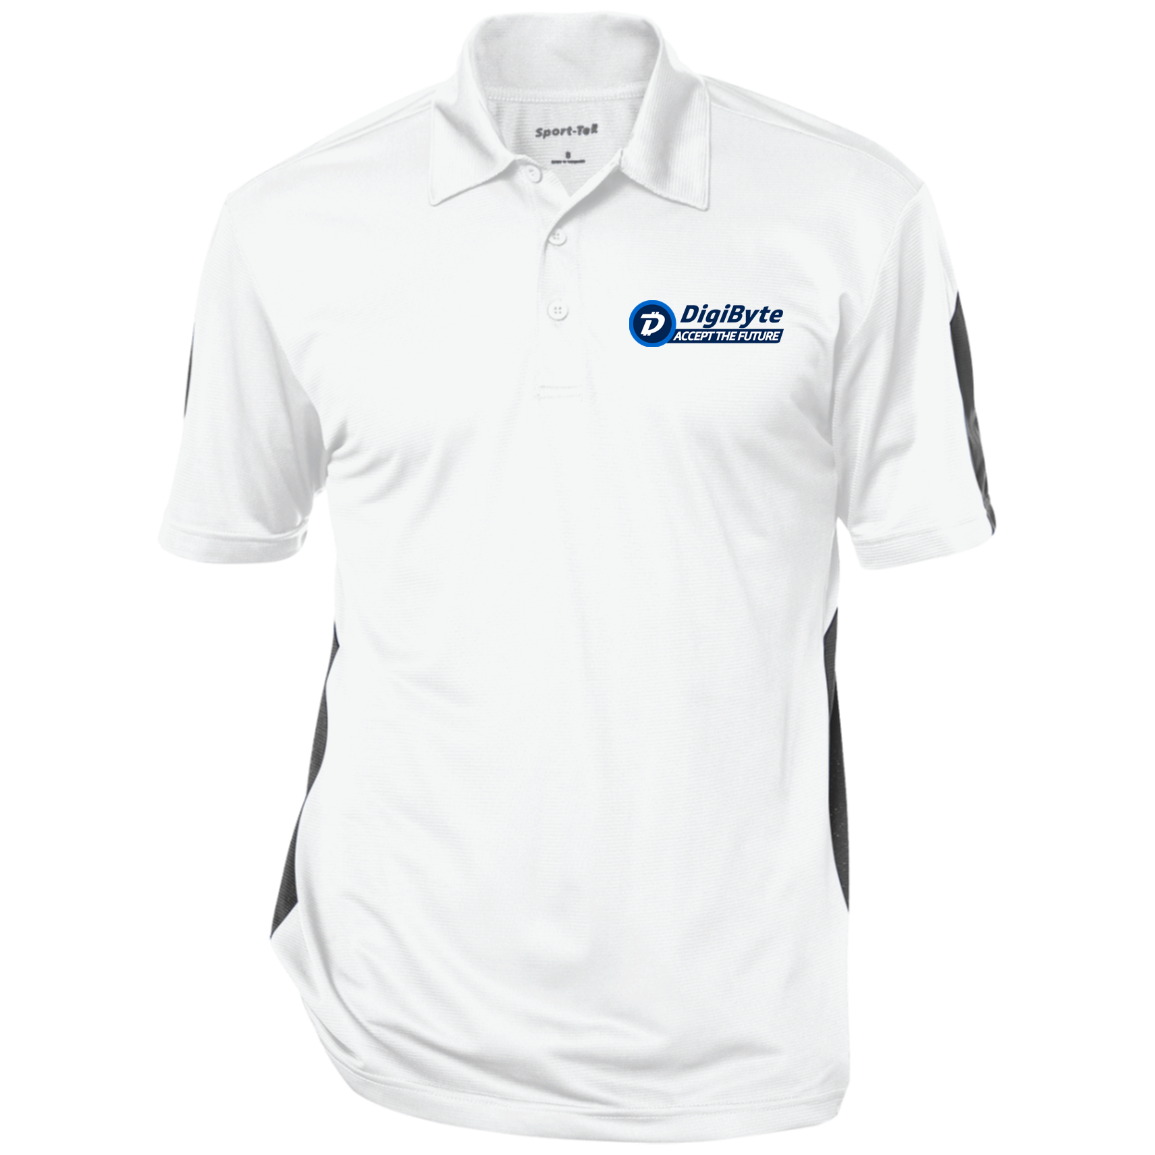 DigiByte Accept the Future – Embroidered Performance Polo by Sport-Tek